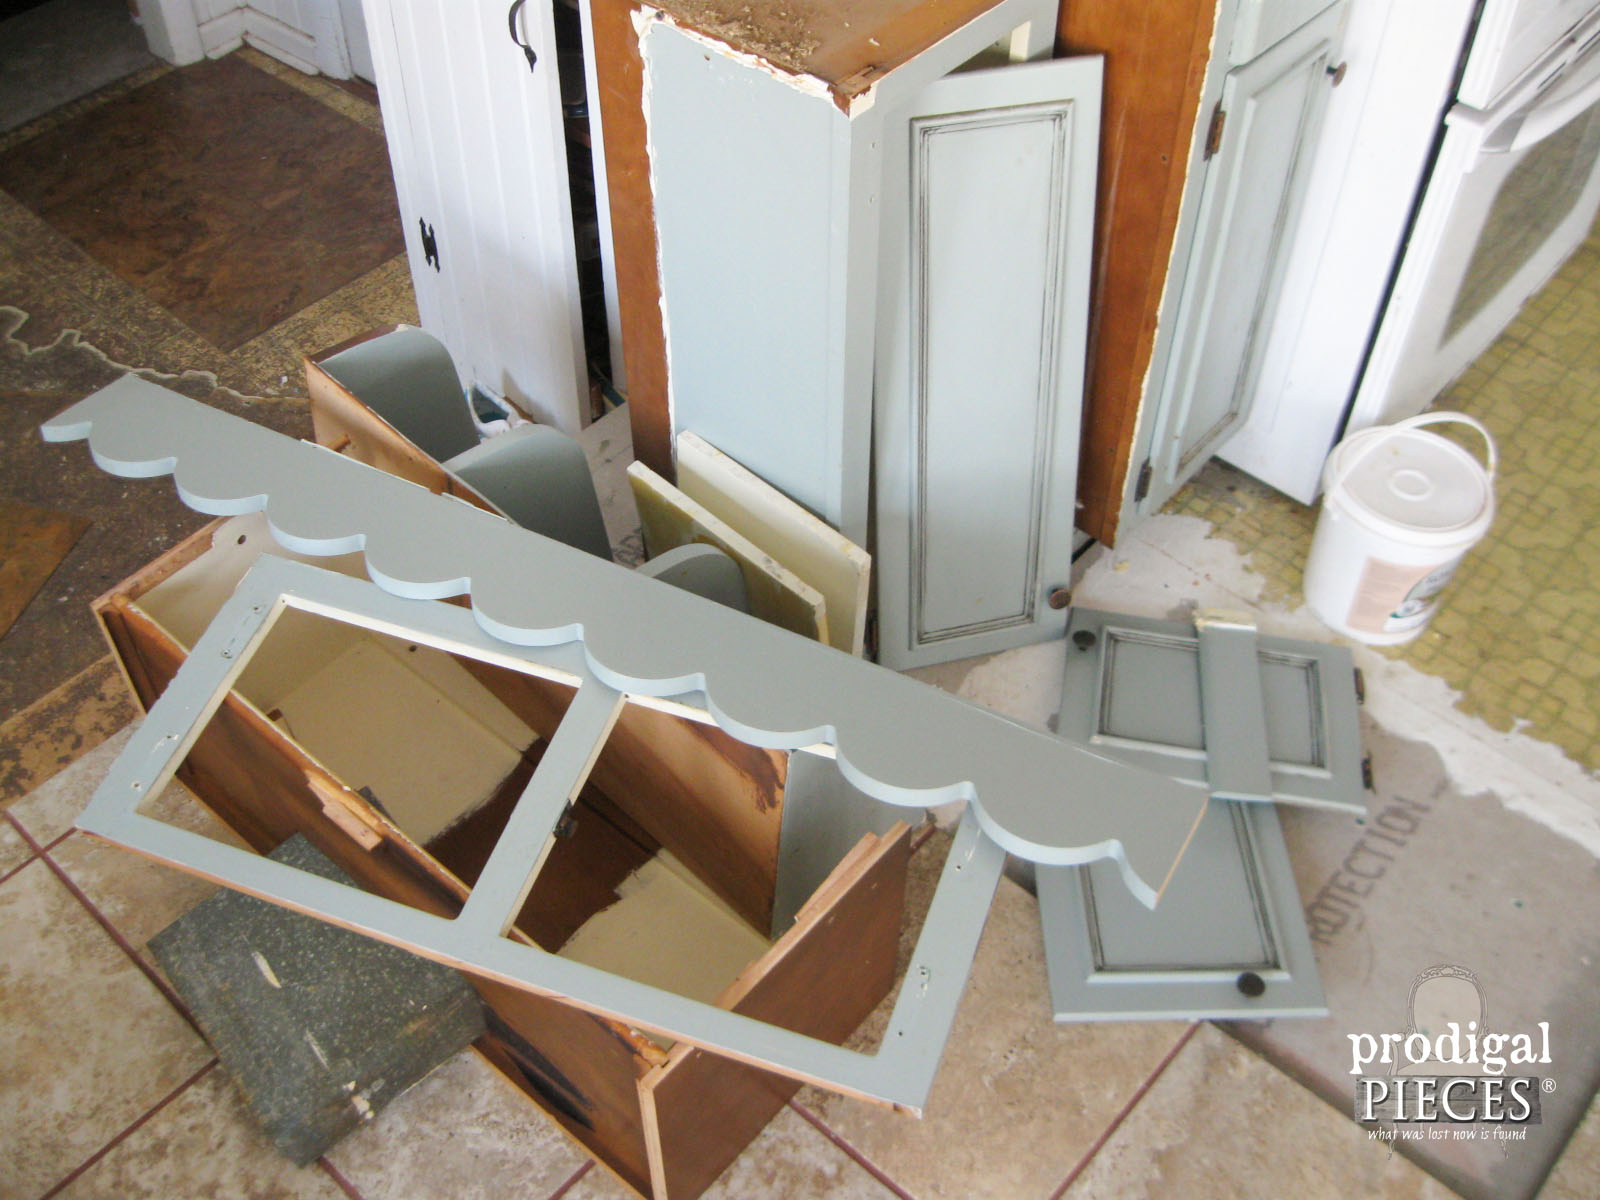 Repurposed Kitchen Cabinets into Home Decor - Prodigal Pieces